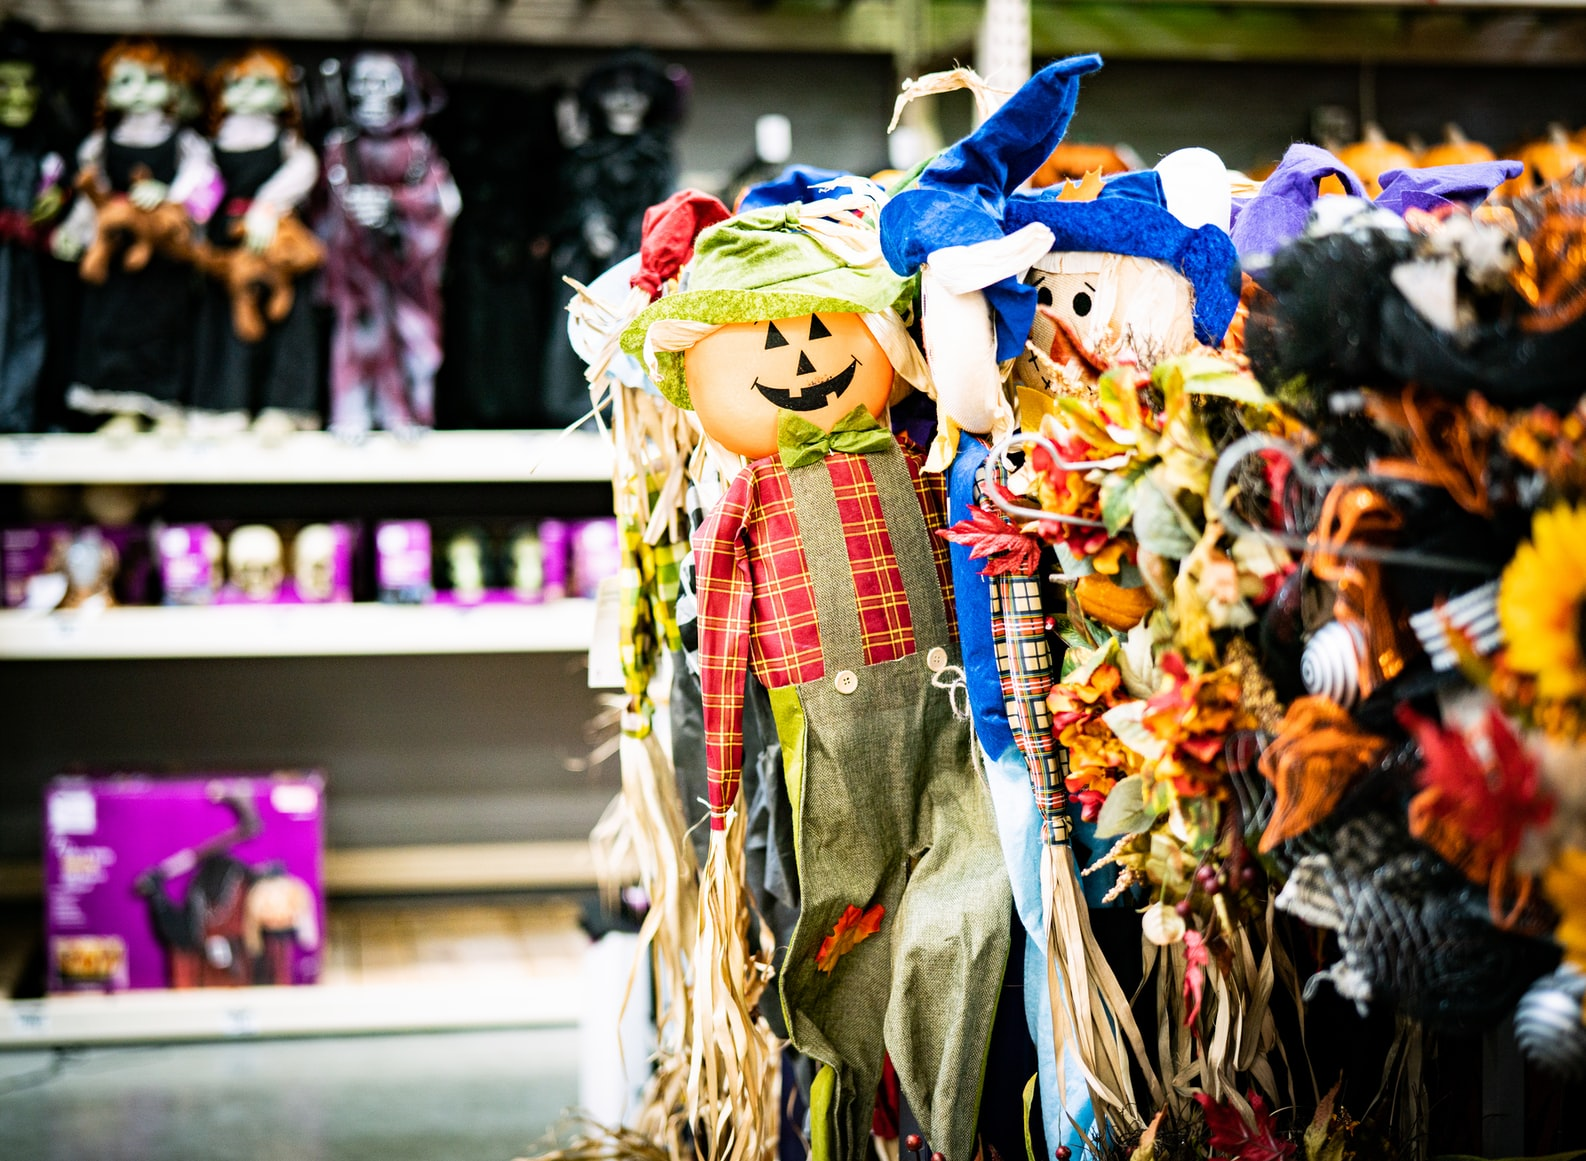 how to attract customers in halloween - promotion